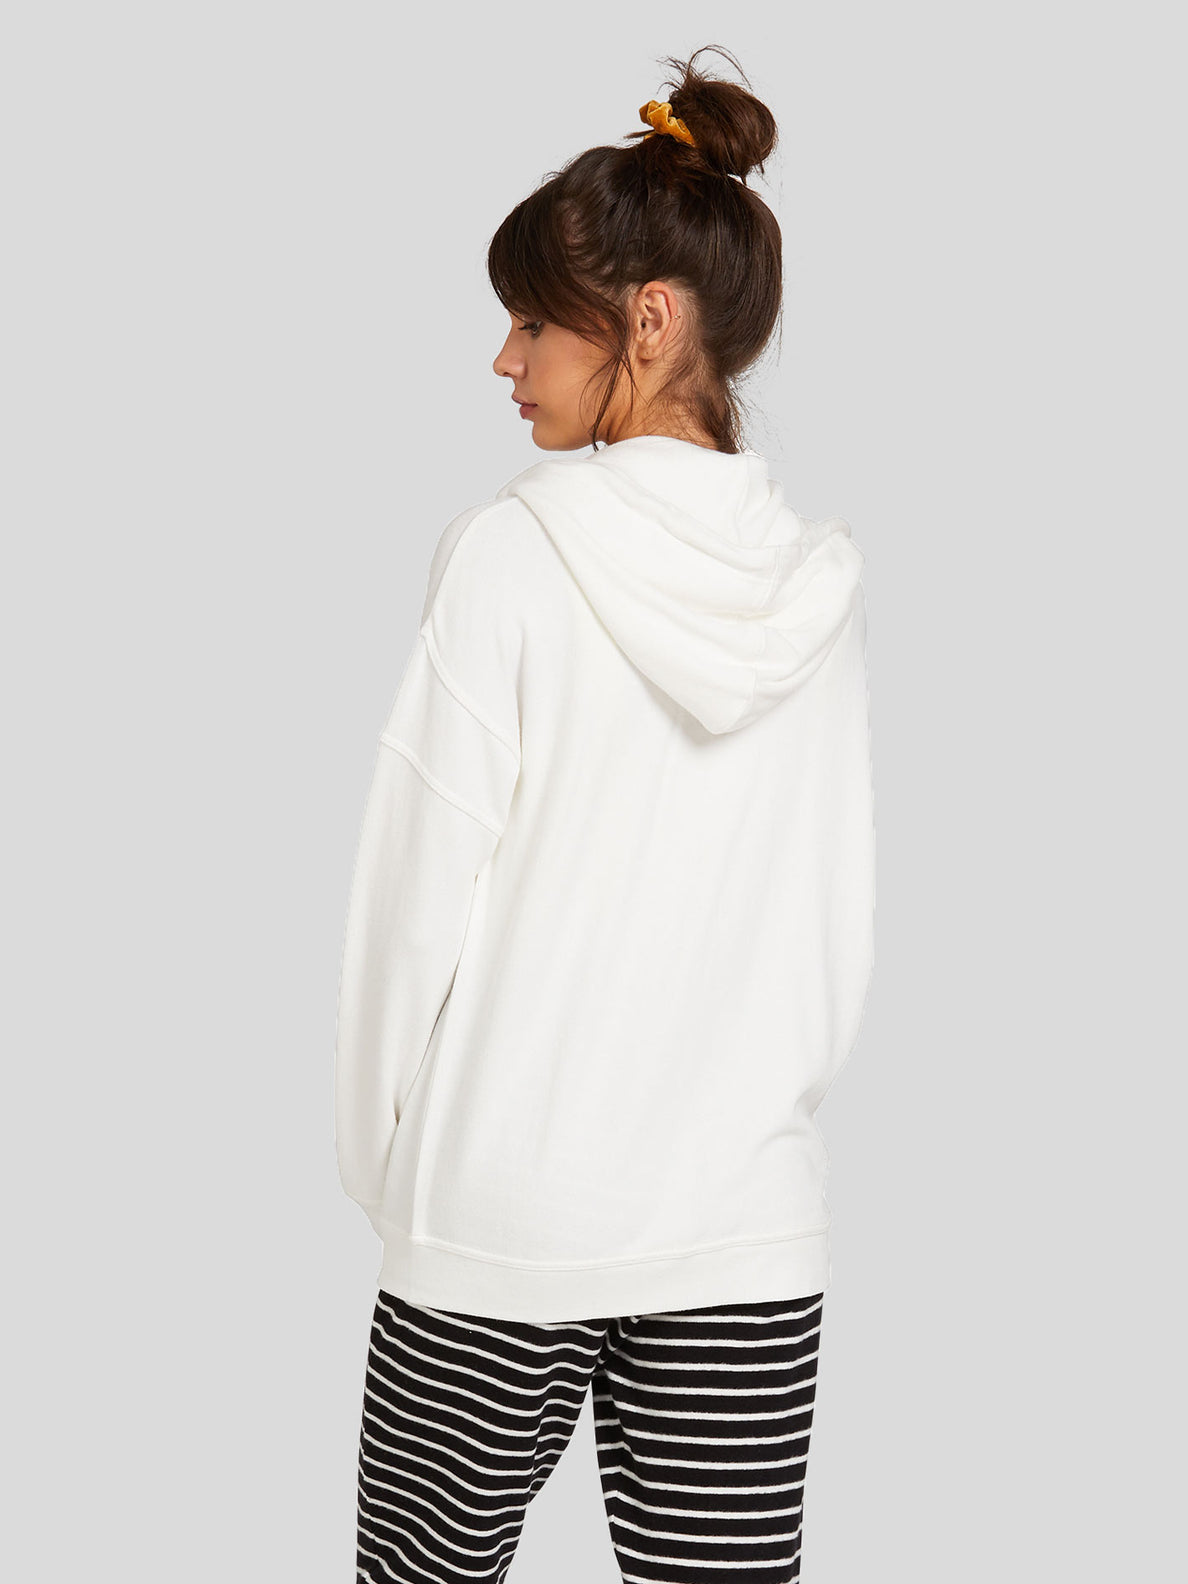 Lived In Lounge Zip Fleece - White